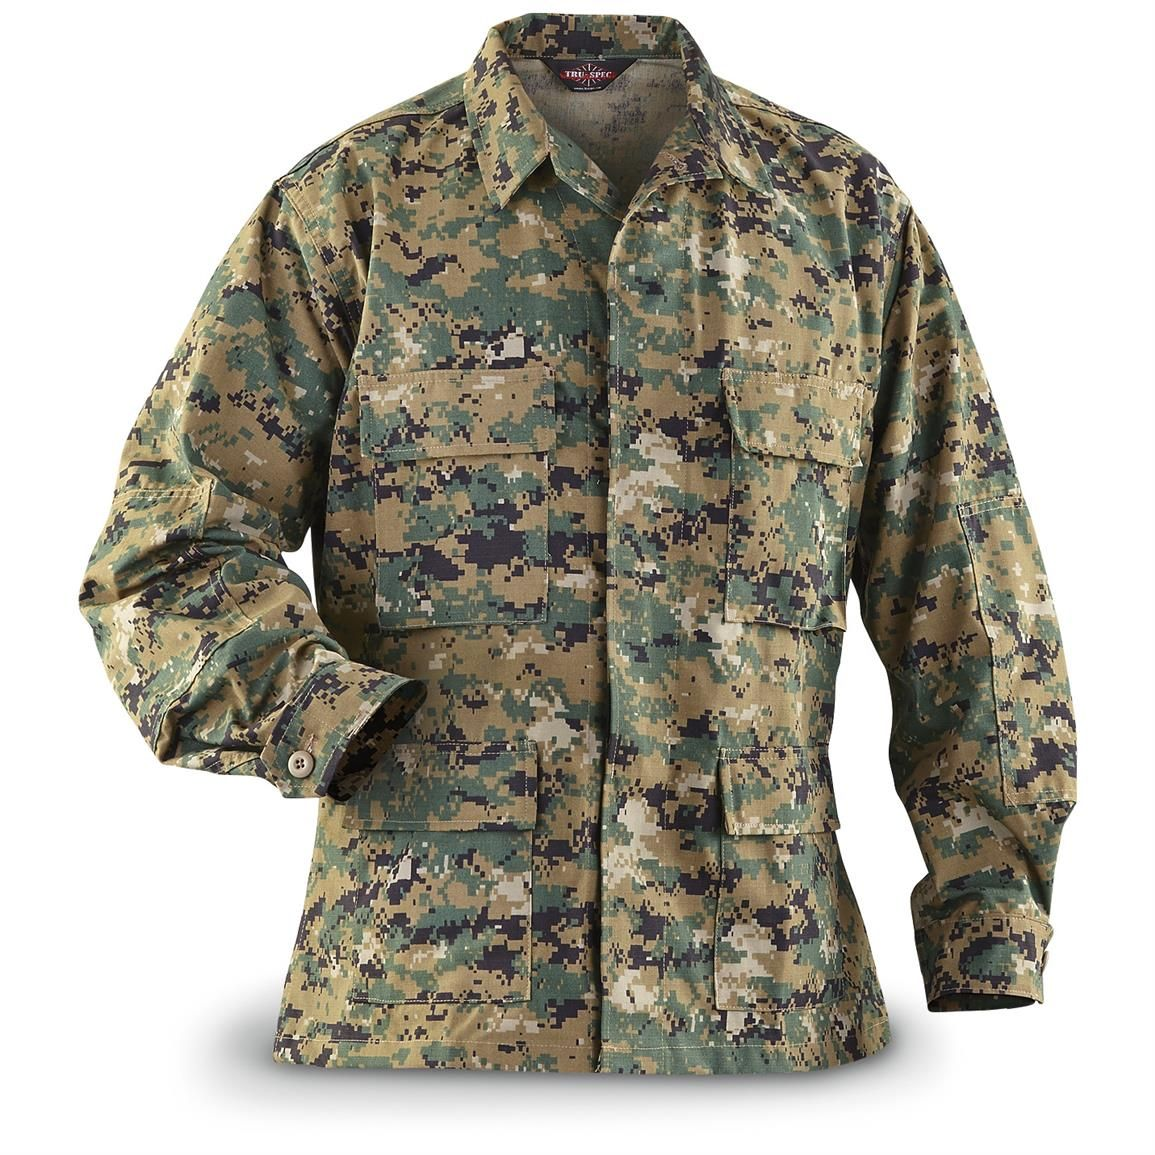 HQ ISSUE Men s Military-Style Digital Woodland Camo BDU Shirt ... 5f861d90d83